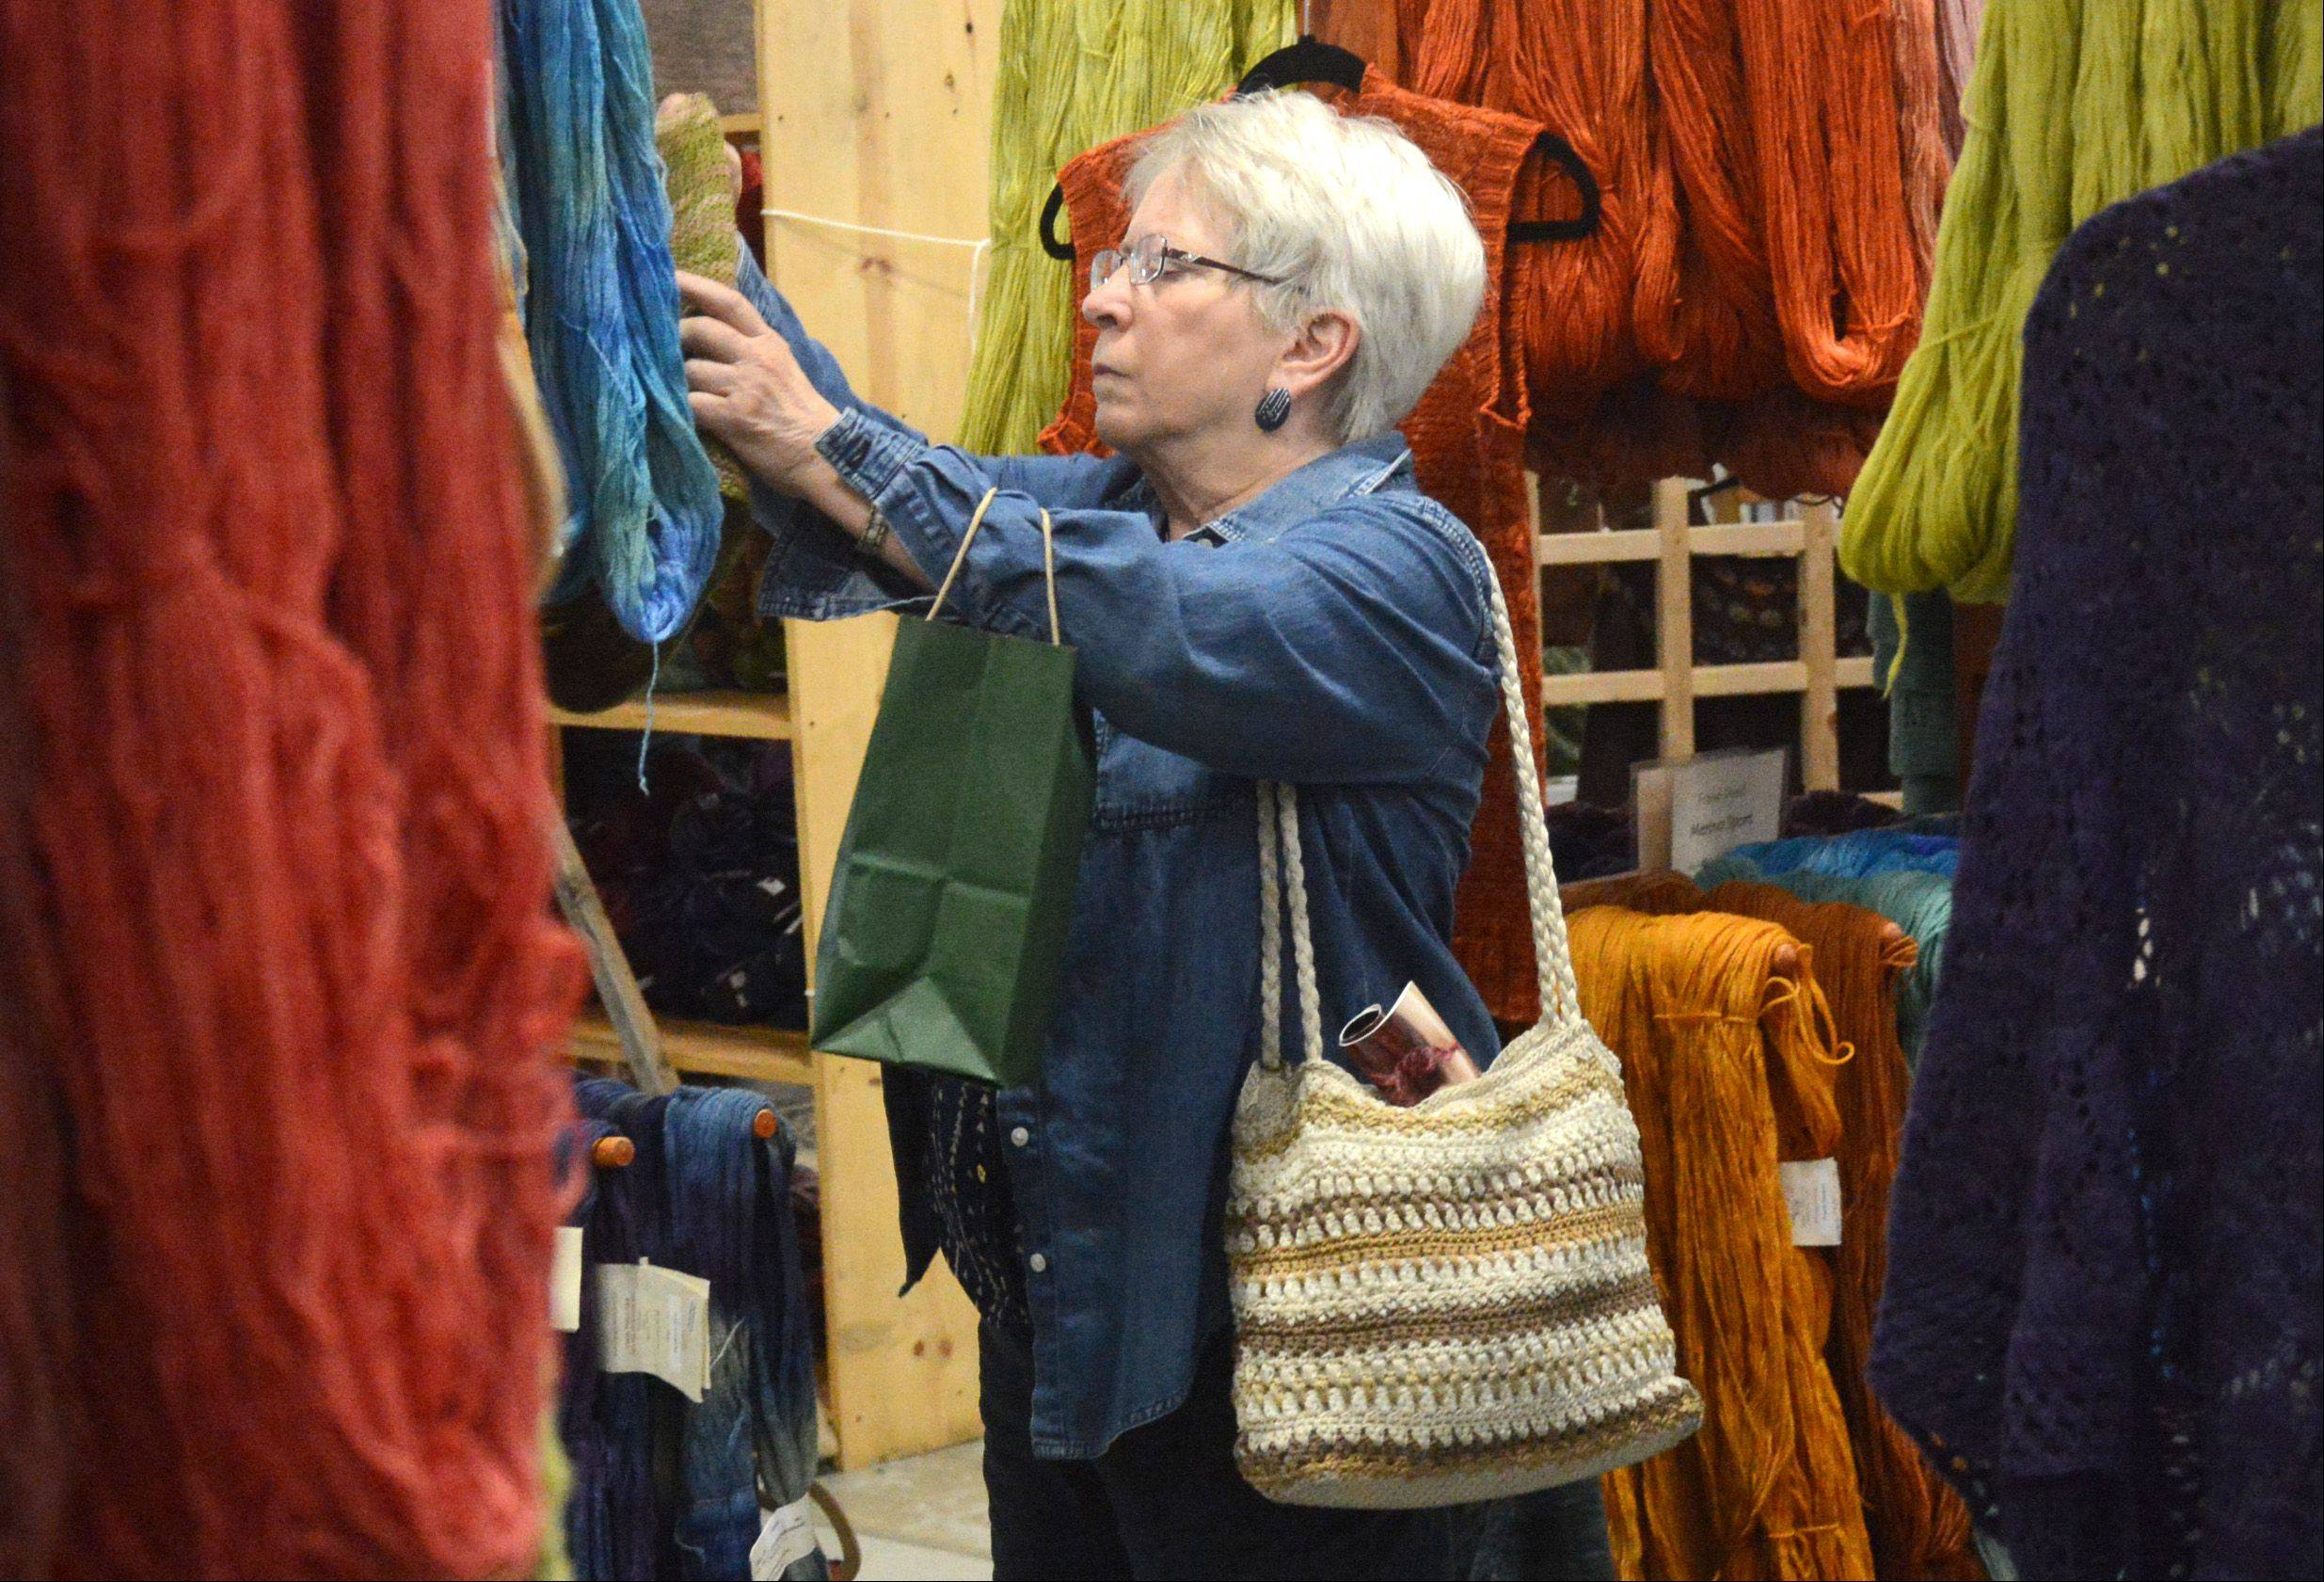 Barbara Lies of Madison, Wis., looks through rows of yarn.